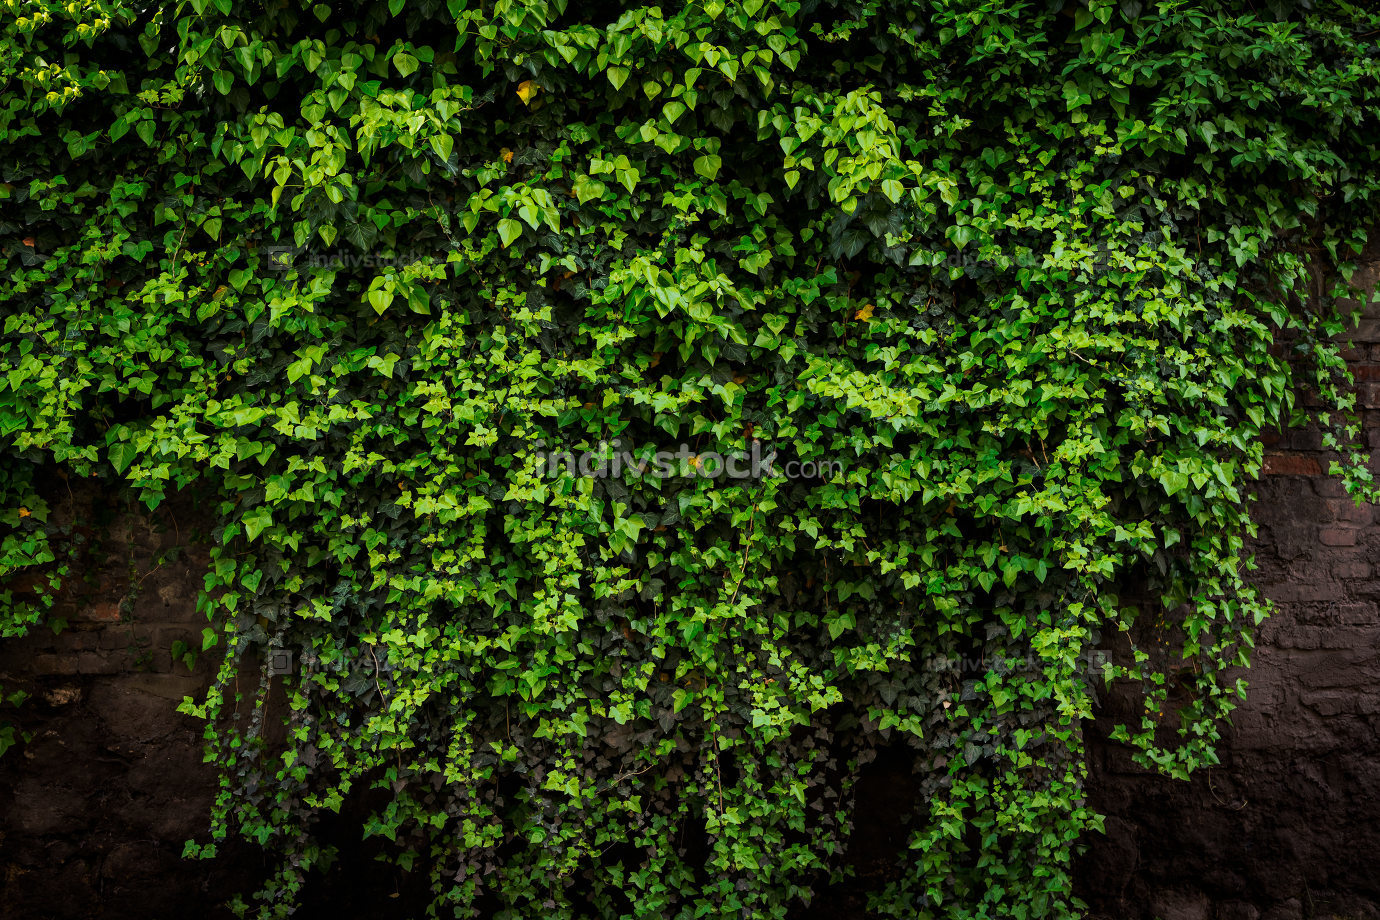 Grunge rustic brick wall with foliage